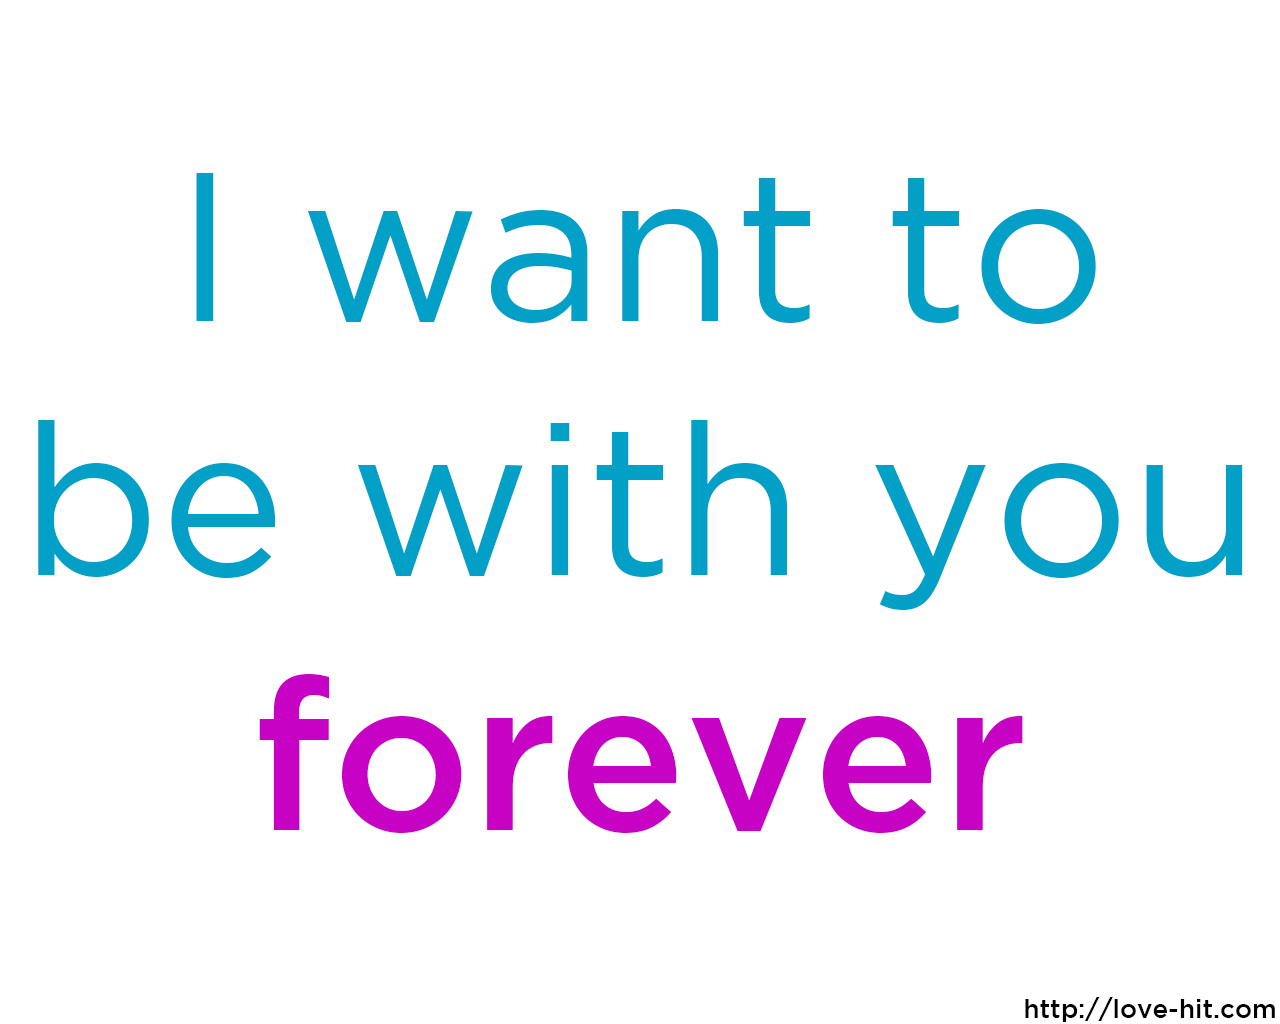 I want to be with you forever